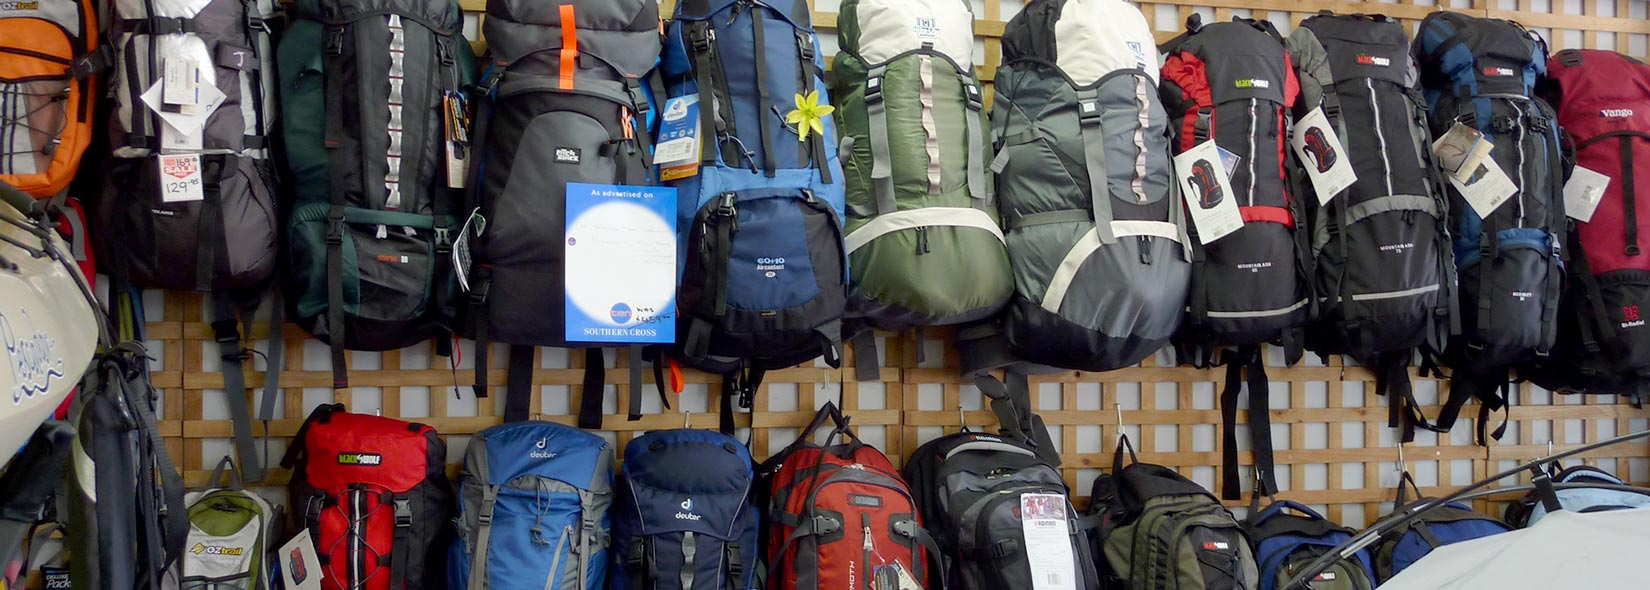 Backpacks, Hiking Packs, Day Packs